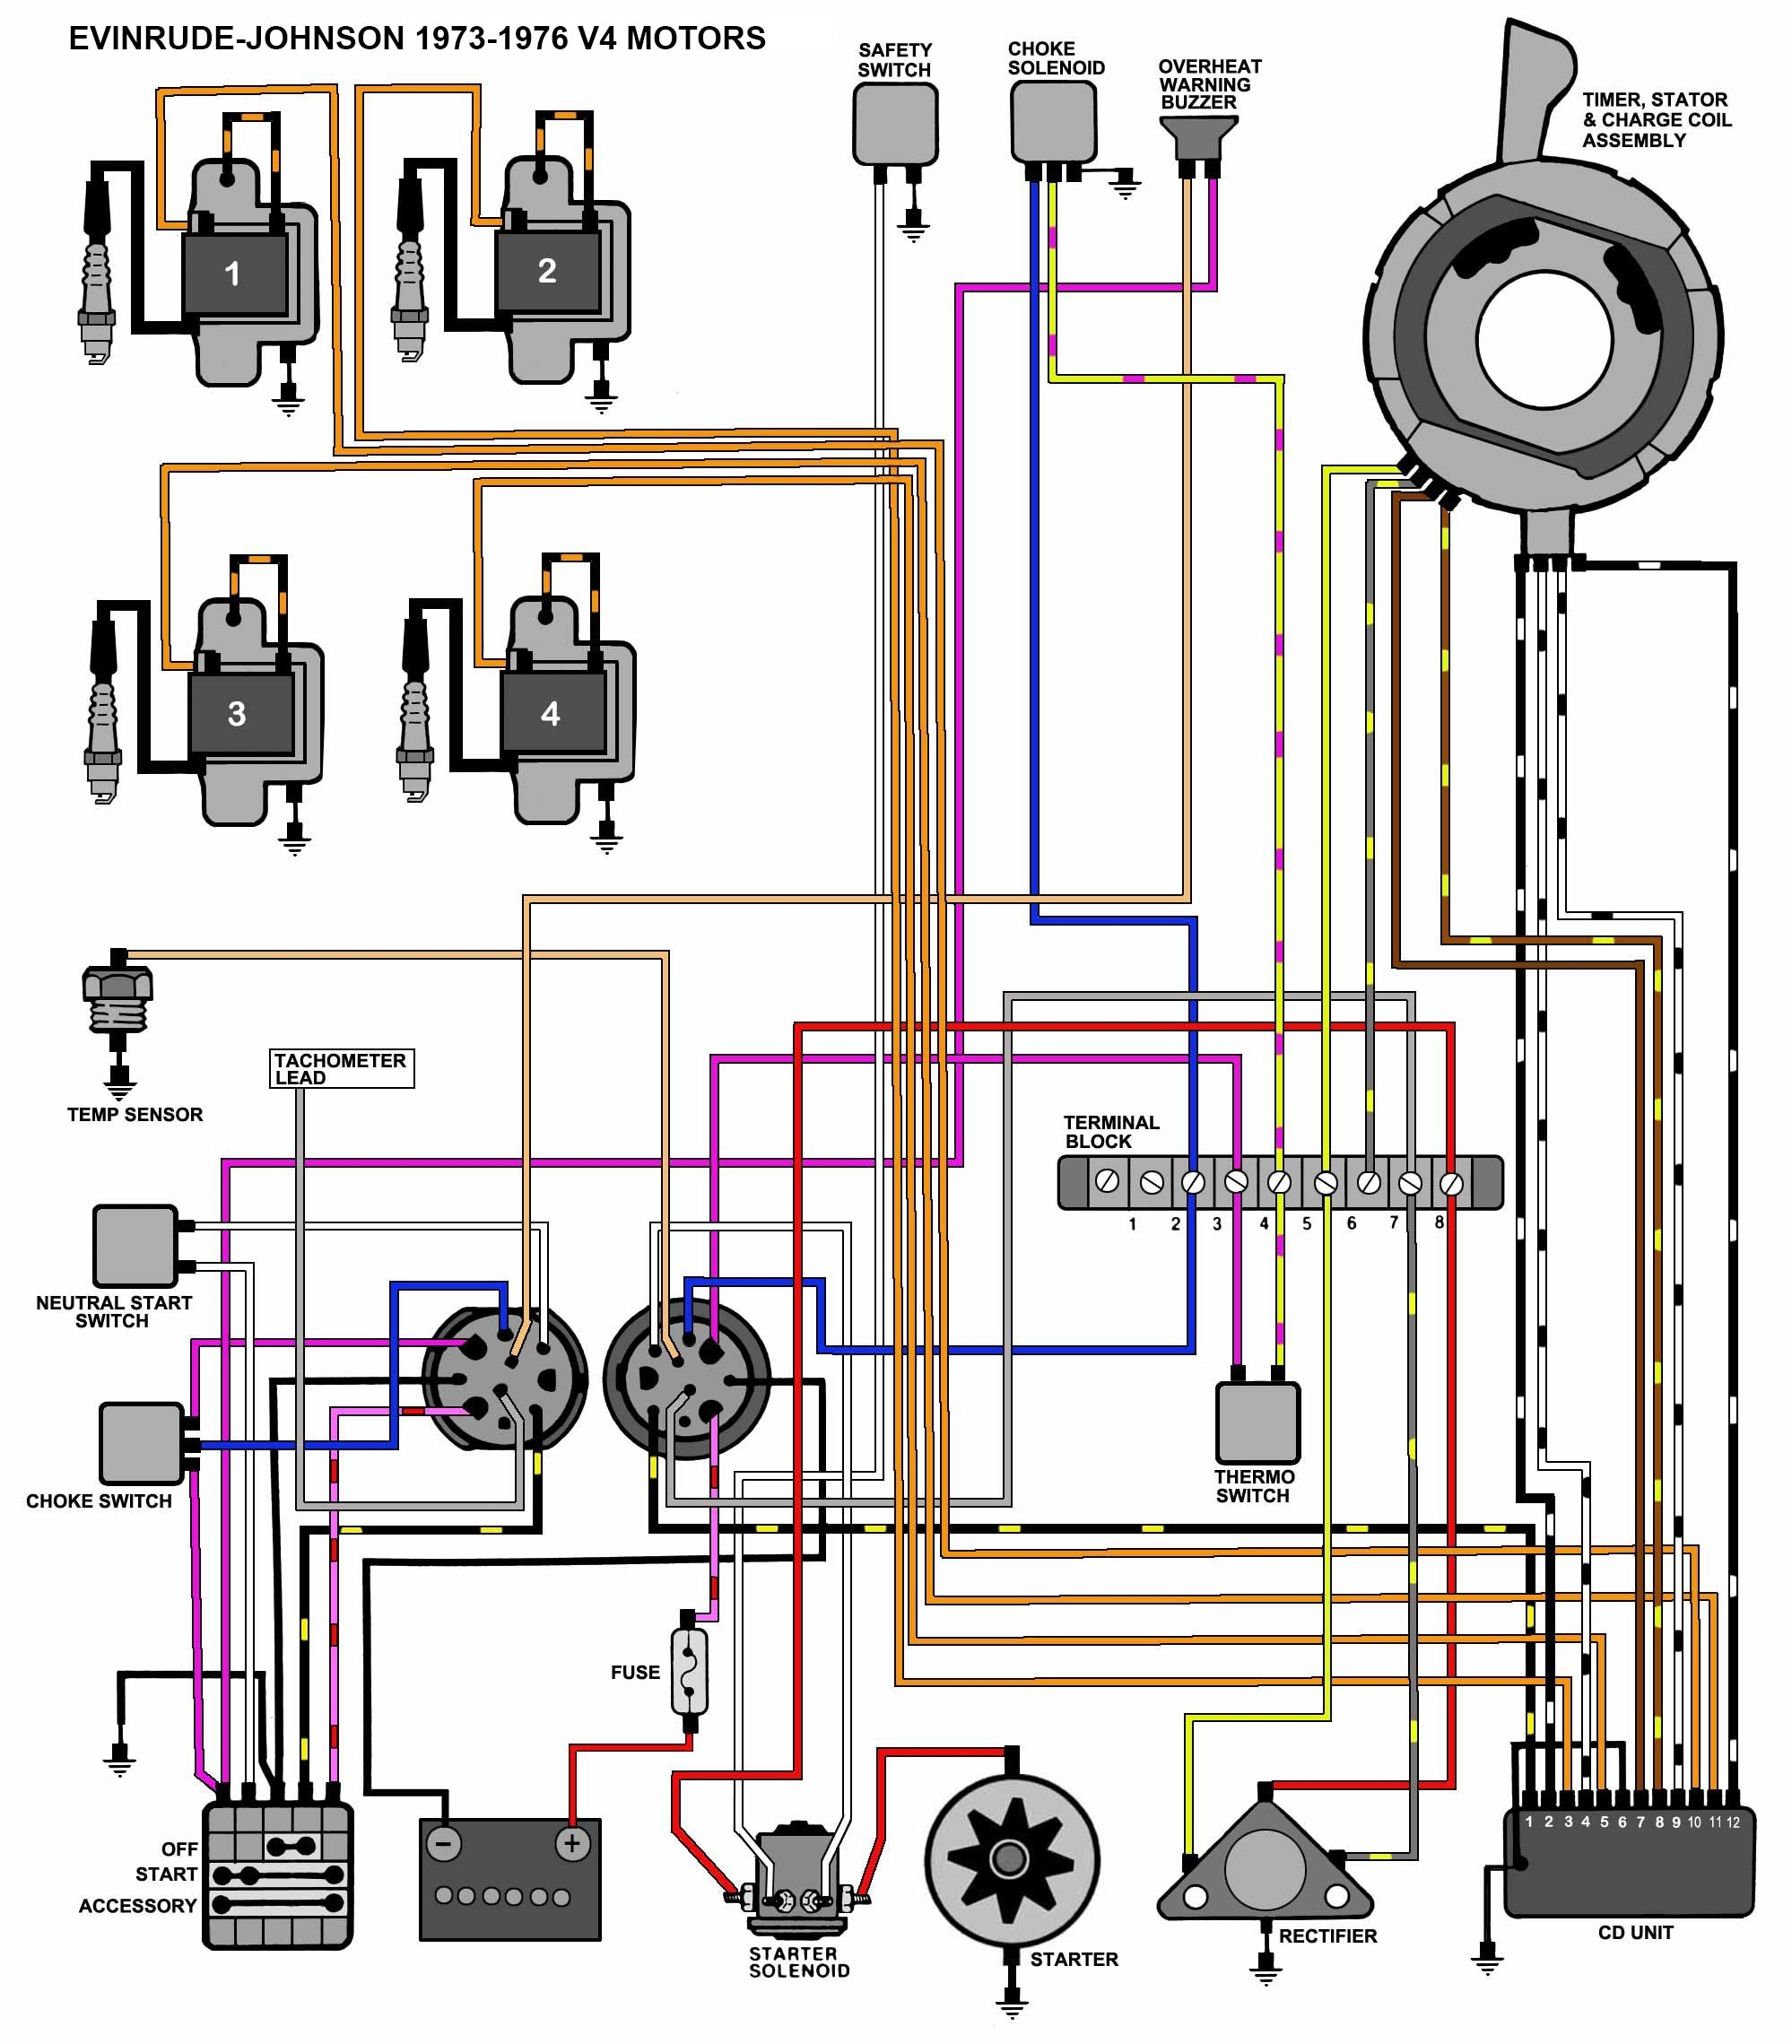 evinrude ignition switch wiring diagram with 1969 omc 55 wiring throughout 70 hp evinrude wiring diagram?resize\\\\\\\\\\\\\\\\\\\\\\\\\\\\\\\=665%2C759\\\\\\\\\\\\\\\\\\\\\\\\\\\\\\\&ssl\\\\\\\\\\\\\\\\\\\\\\\\\\\\\\\=1 1999 70 hp evinrude wiring diagram wiring diagram simonand omc wiring diagrams at webbmarketing.co